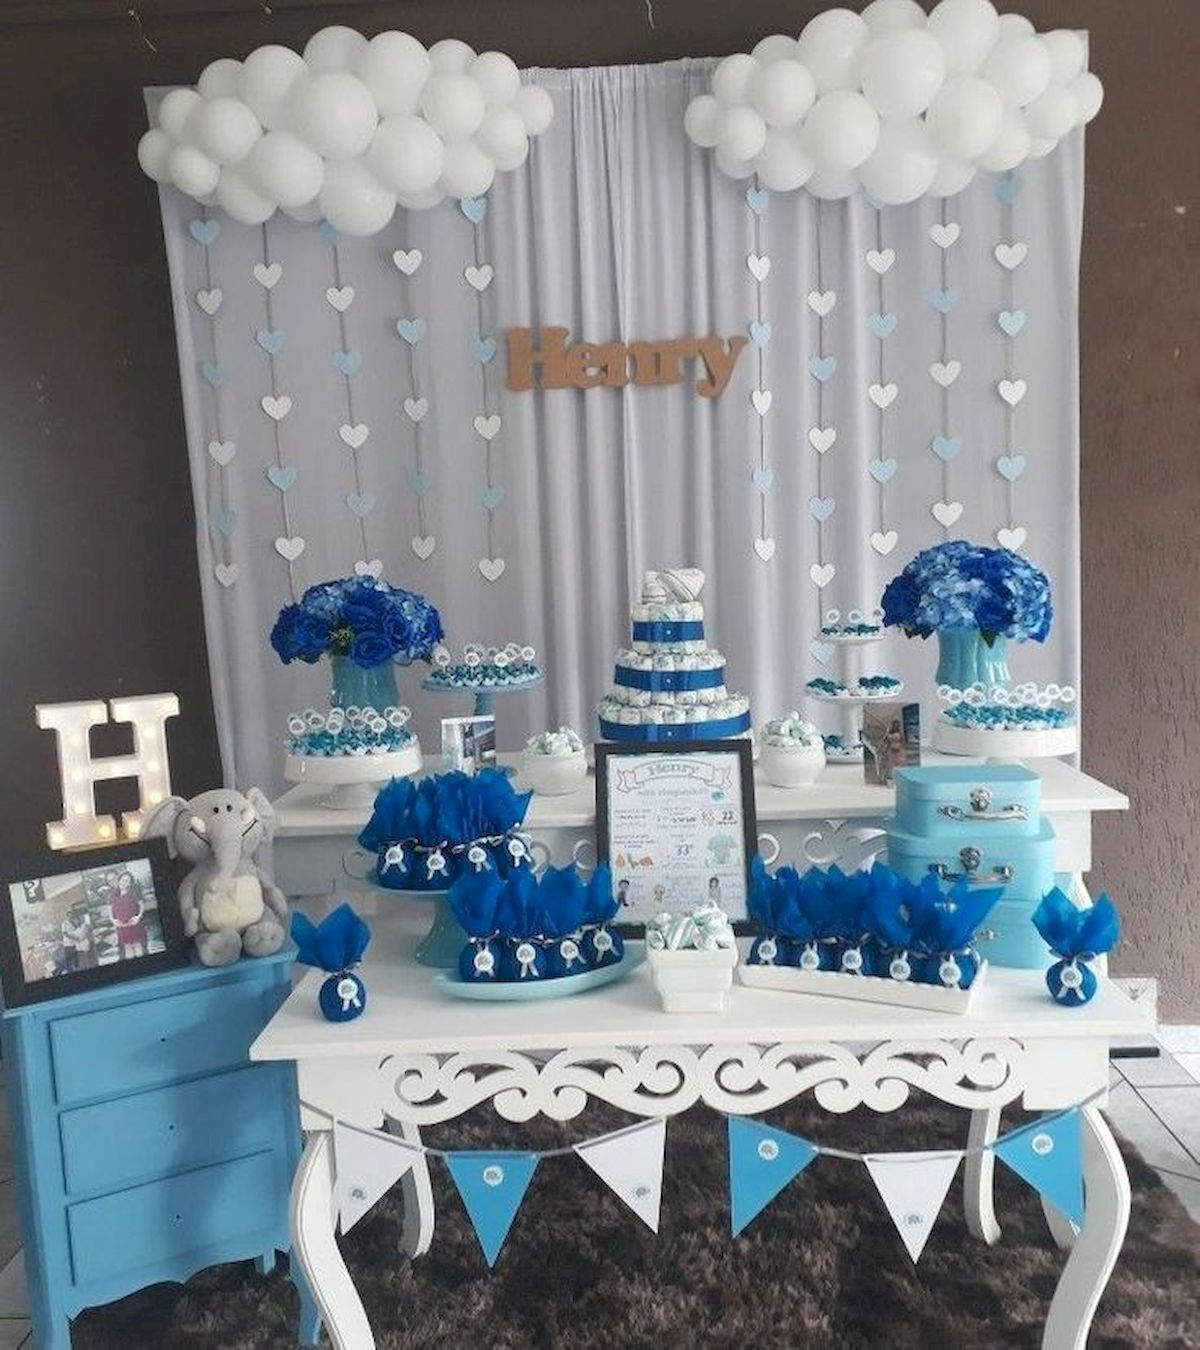 50 Awesome Baby Shower Themes And Decorating Ideas For Boy